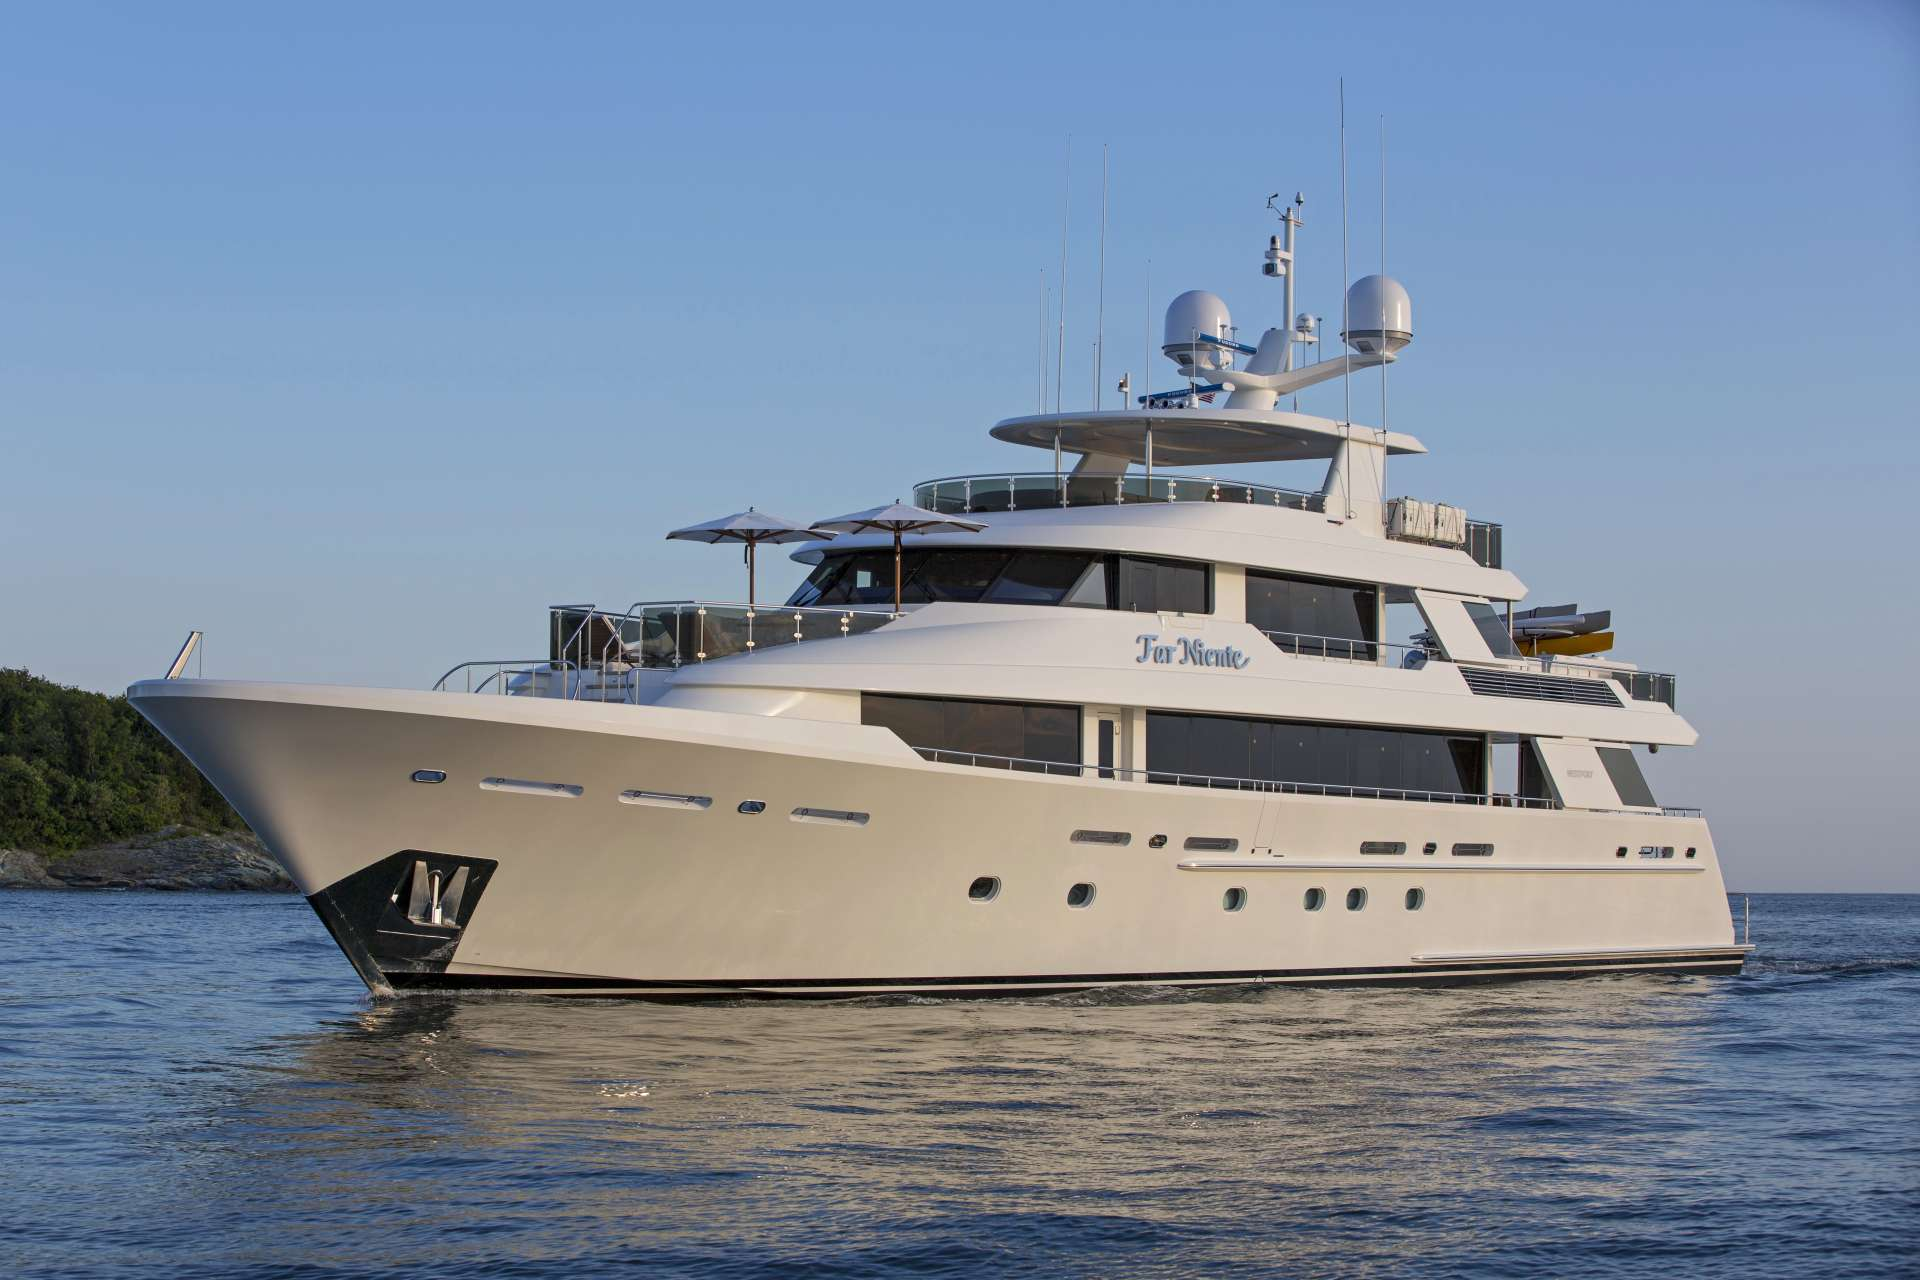 Power Yacht 'Power', 10 PAX, 7 Crew, 130.00 Ft, 39.00 Meters, Built 2014, Westport, Refit Year 2017